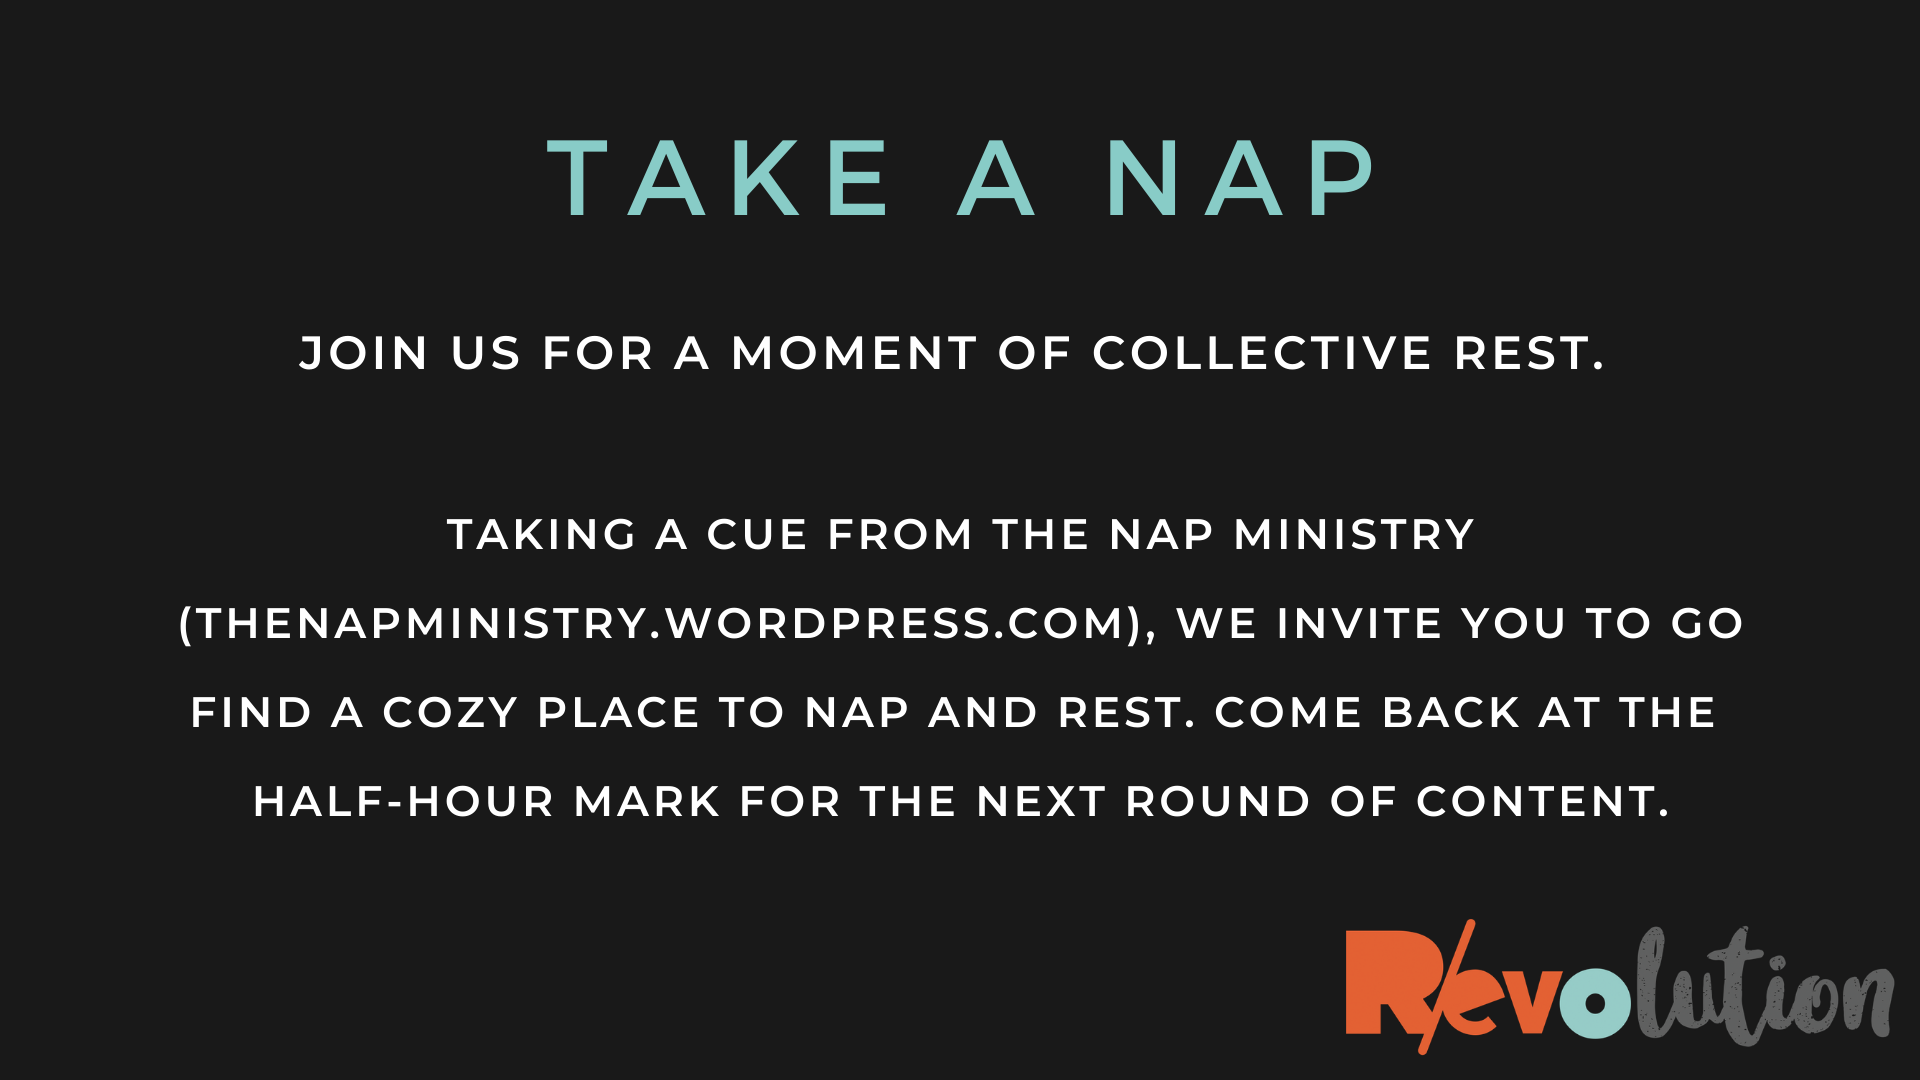 Light-colored text on a black background: Take A Nap - Join us for a moment of collective rest. Taking a cue from The Nap Ministry (thenapministry.wordpress.com), we invite you to go find a cozy place to nap and rest. Come back at the half-hour mark for the next round of content. R/evolution logo.